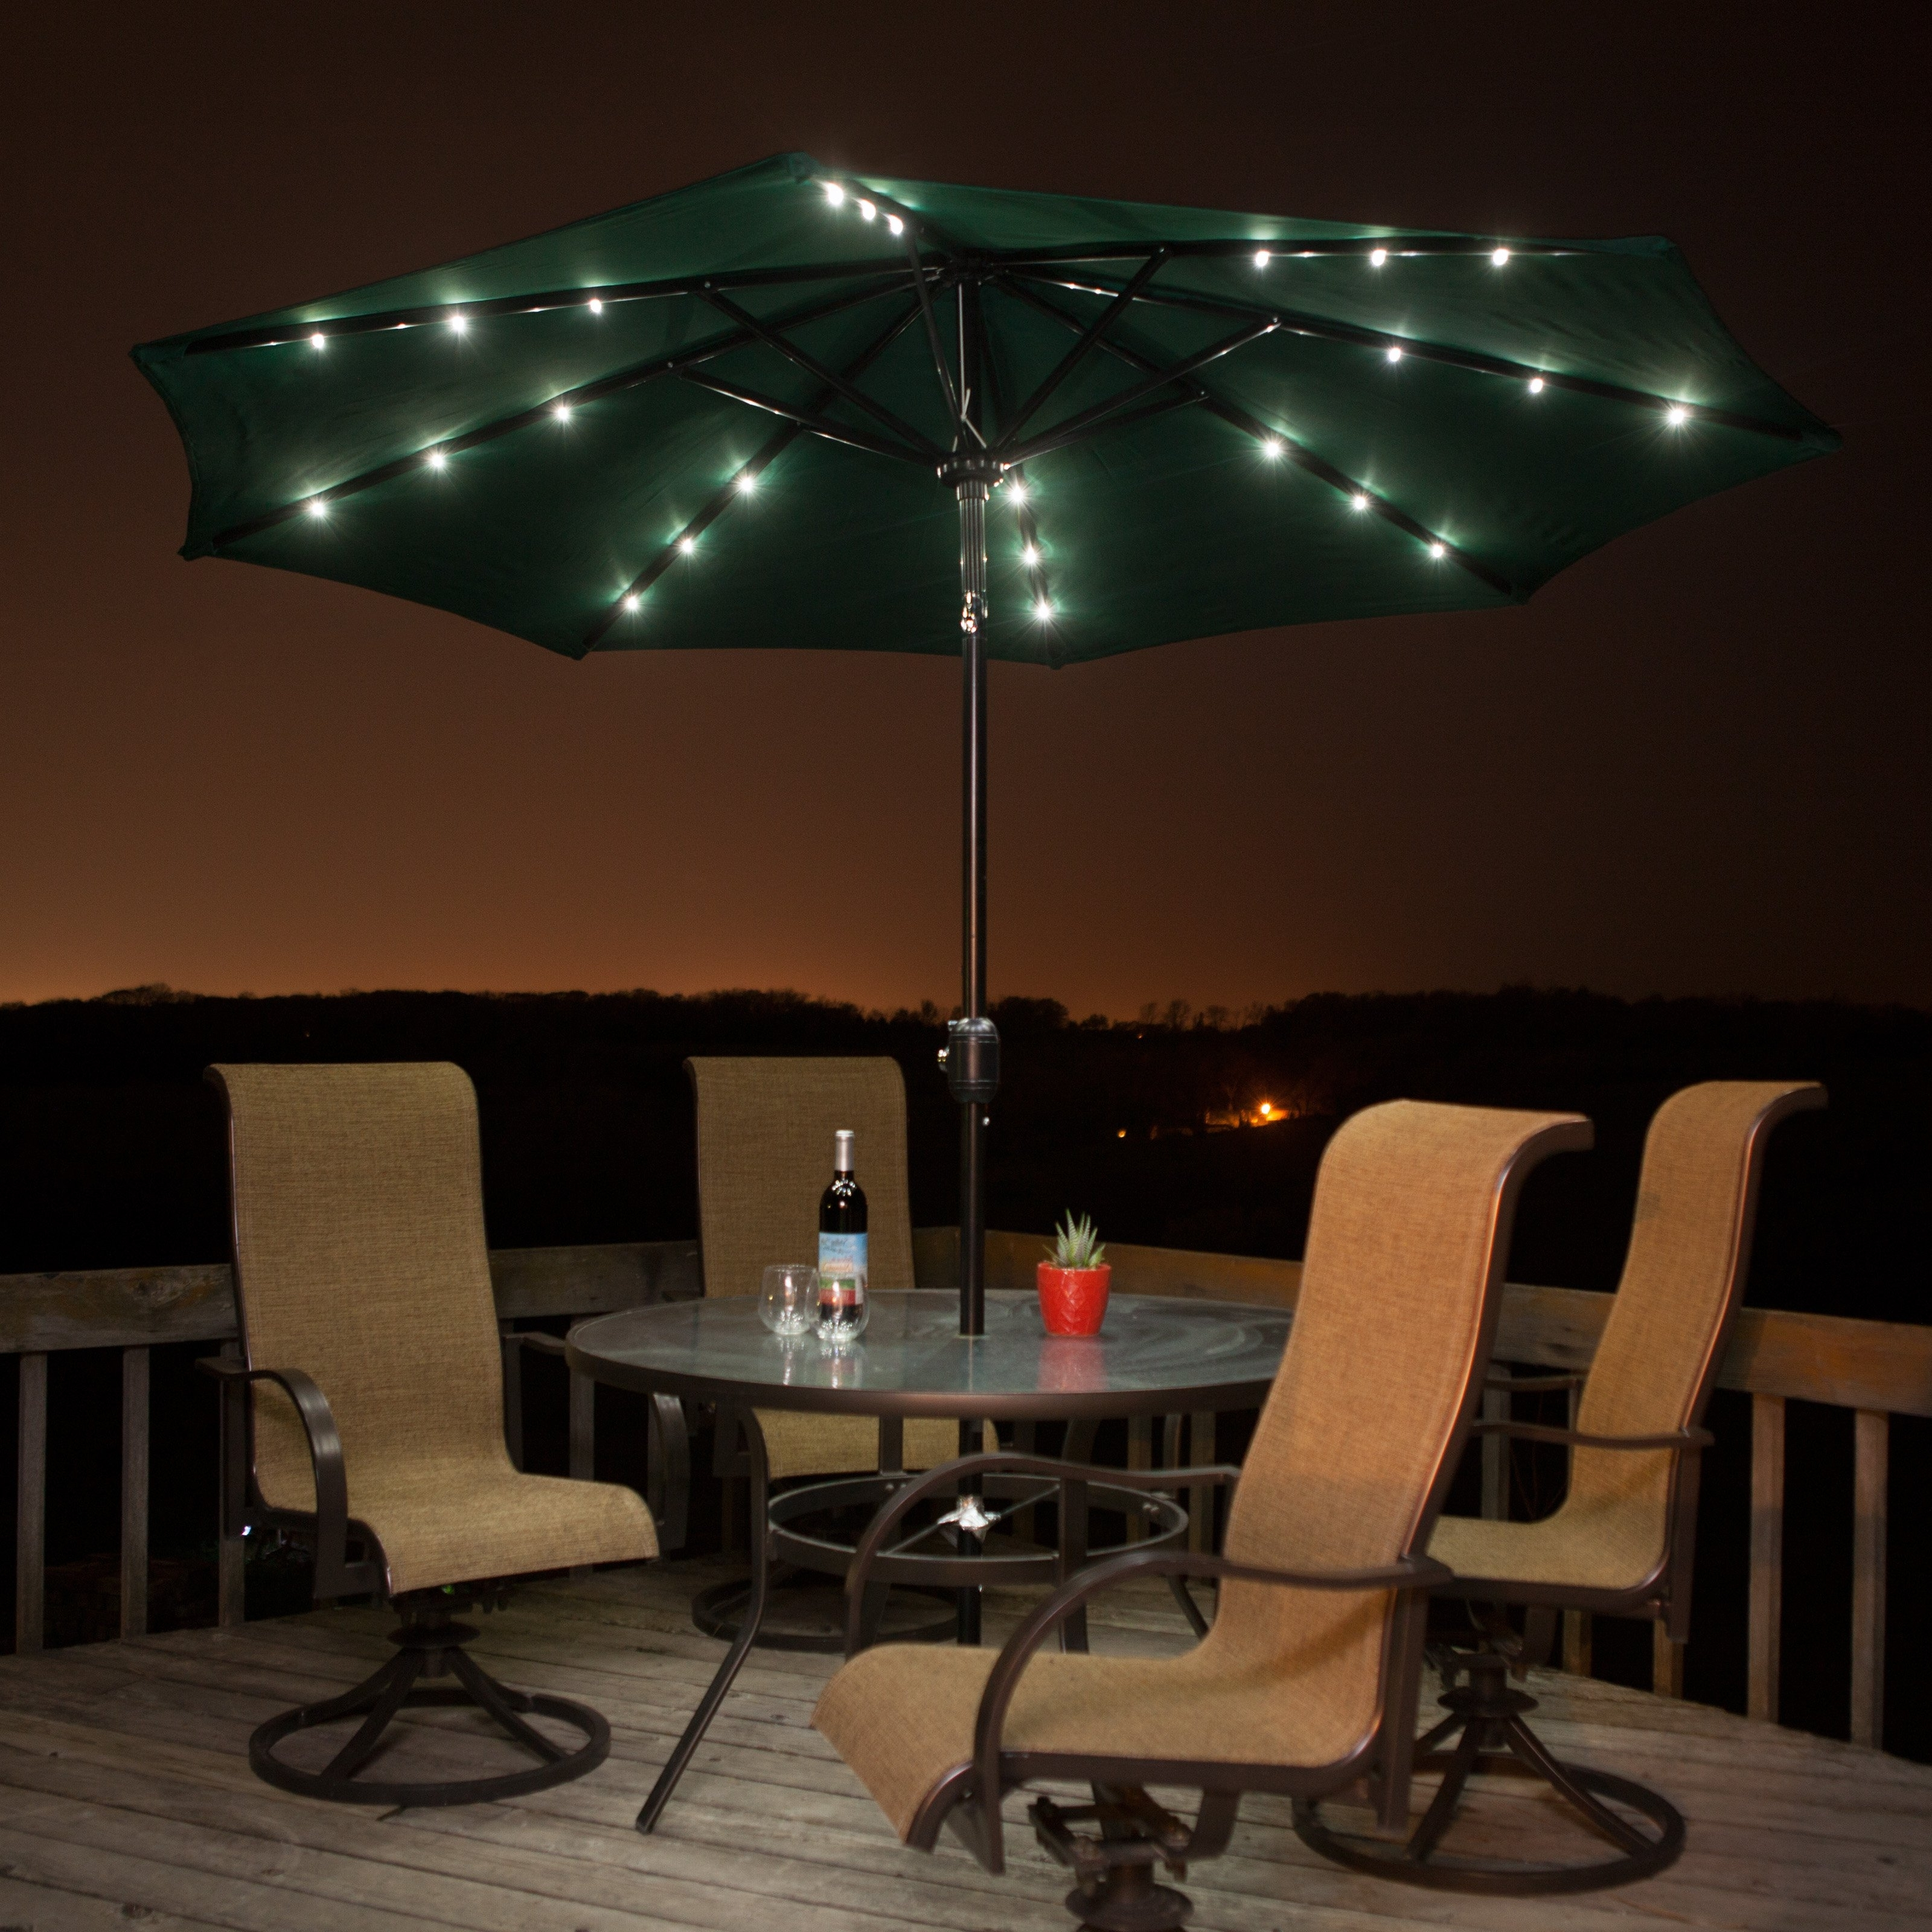 Lighted Patio Umbrellas — Mistikcamping Home Design : Different Intended For Favorite Solar Powered Patio Umbrellas (View 9 of 20)